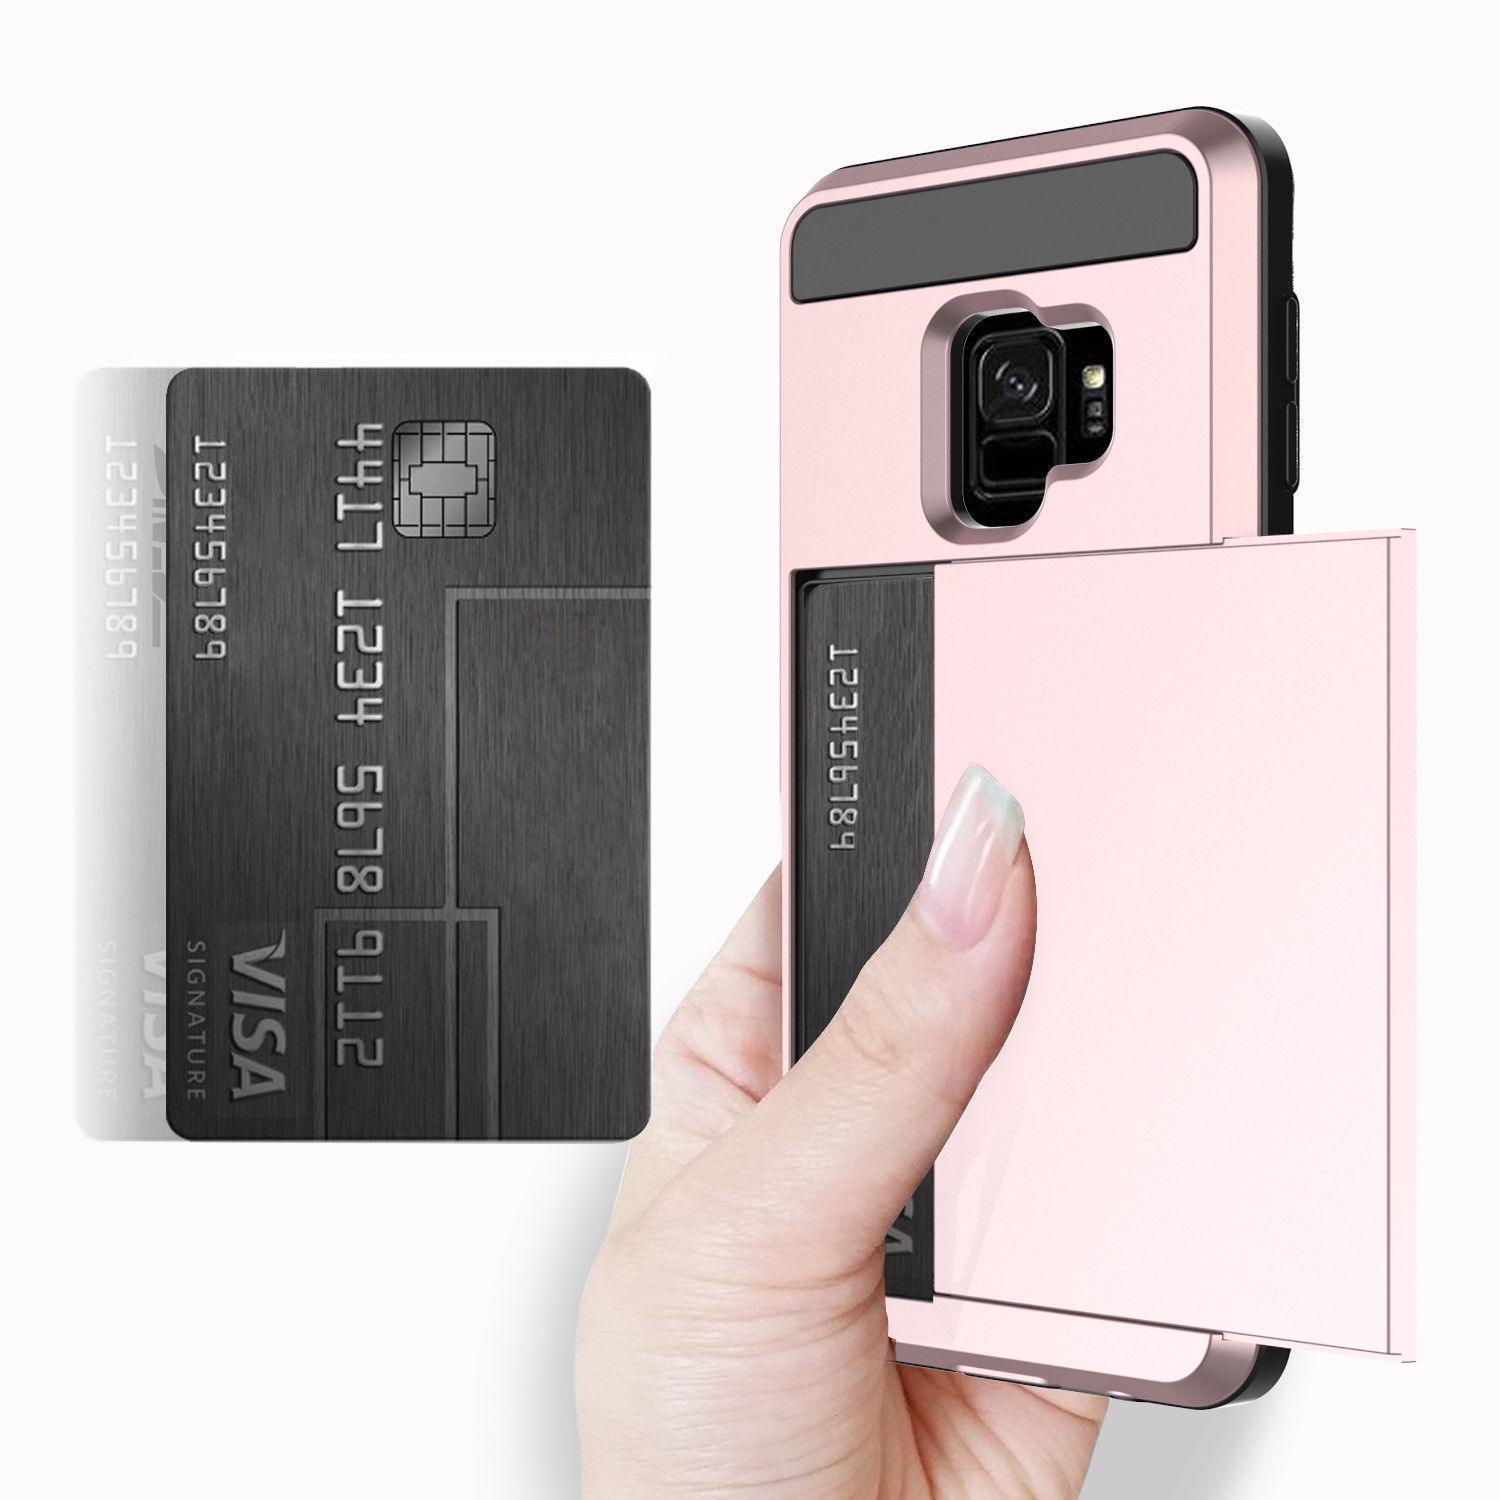 Original Wontive Card Wallet Slot Shockproof Hybrid Phone Cases Goospery Iphone 6 6s Dream Bumper Case Rose Gold Cover For Samsung Galaxy S7 Edge S8 Plus S9 Note 8 In From Cellphones